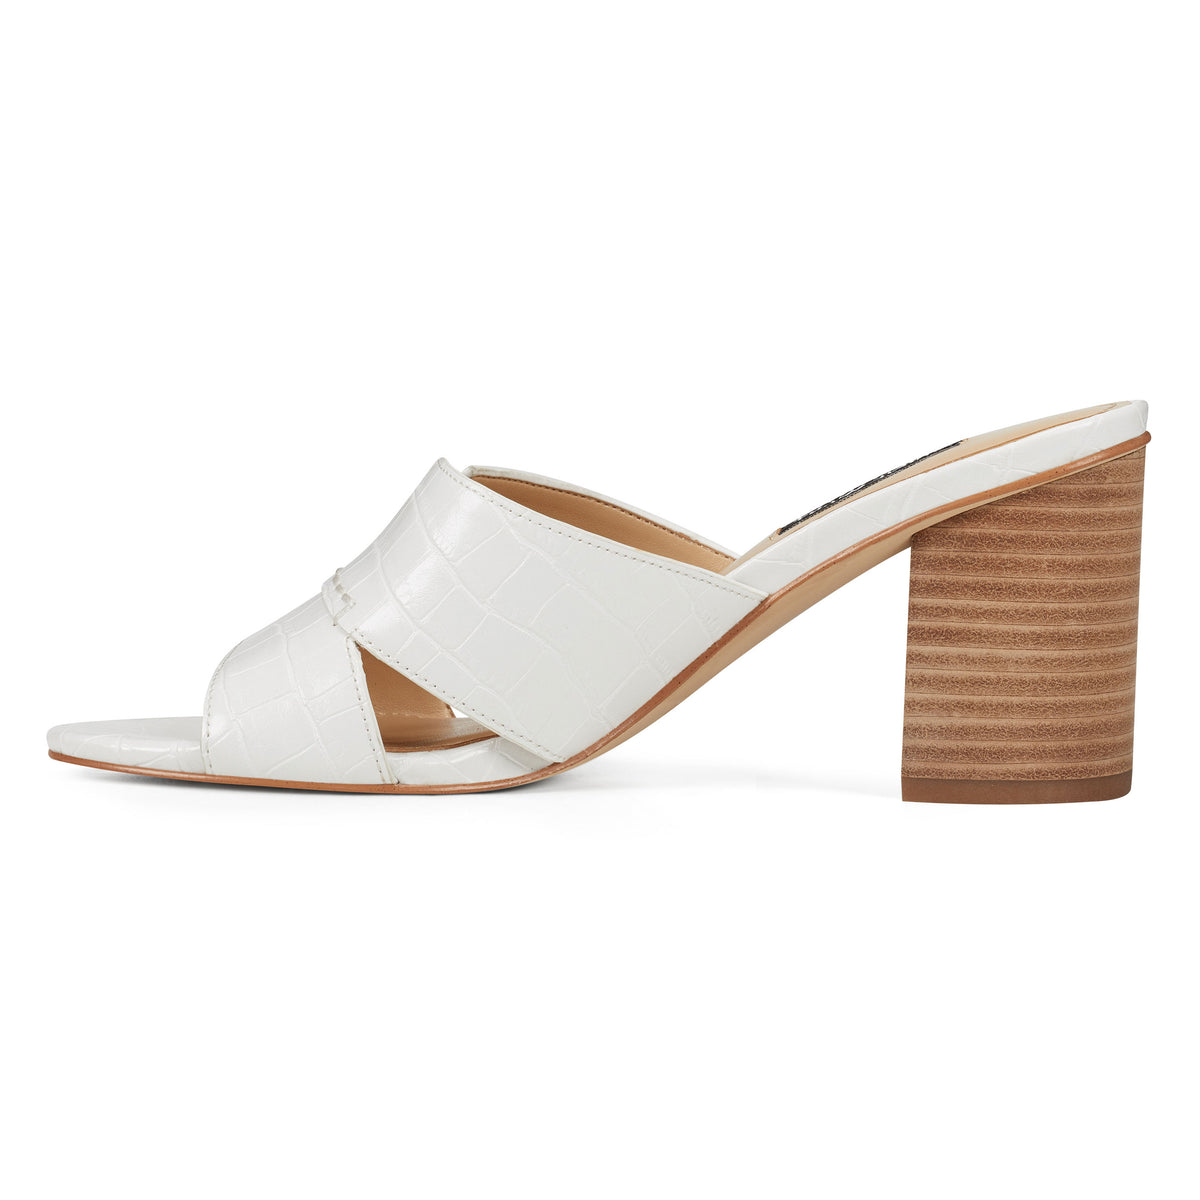 nicolet-slide-sandals-in-white-embossed-croco